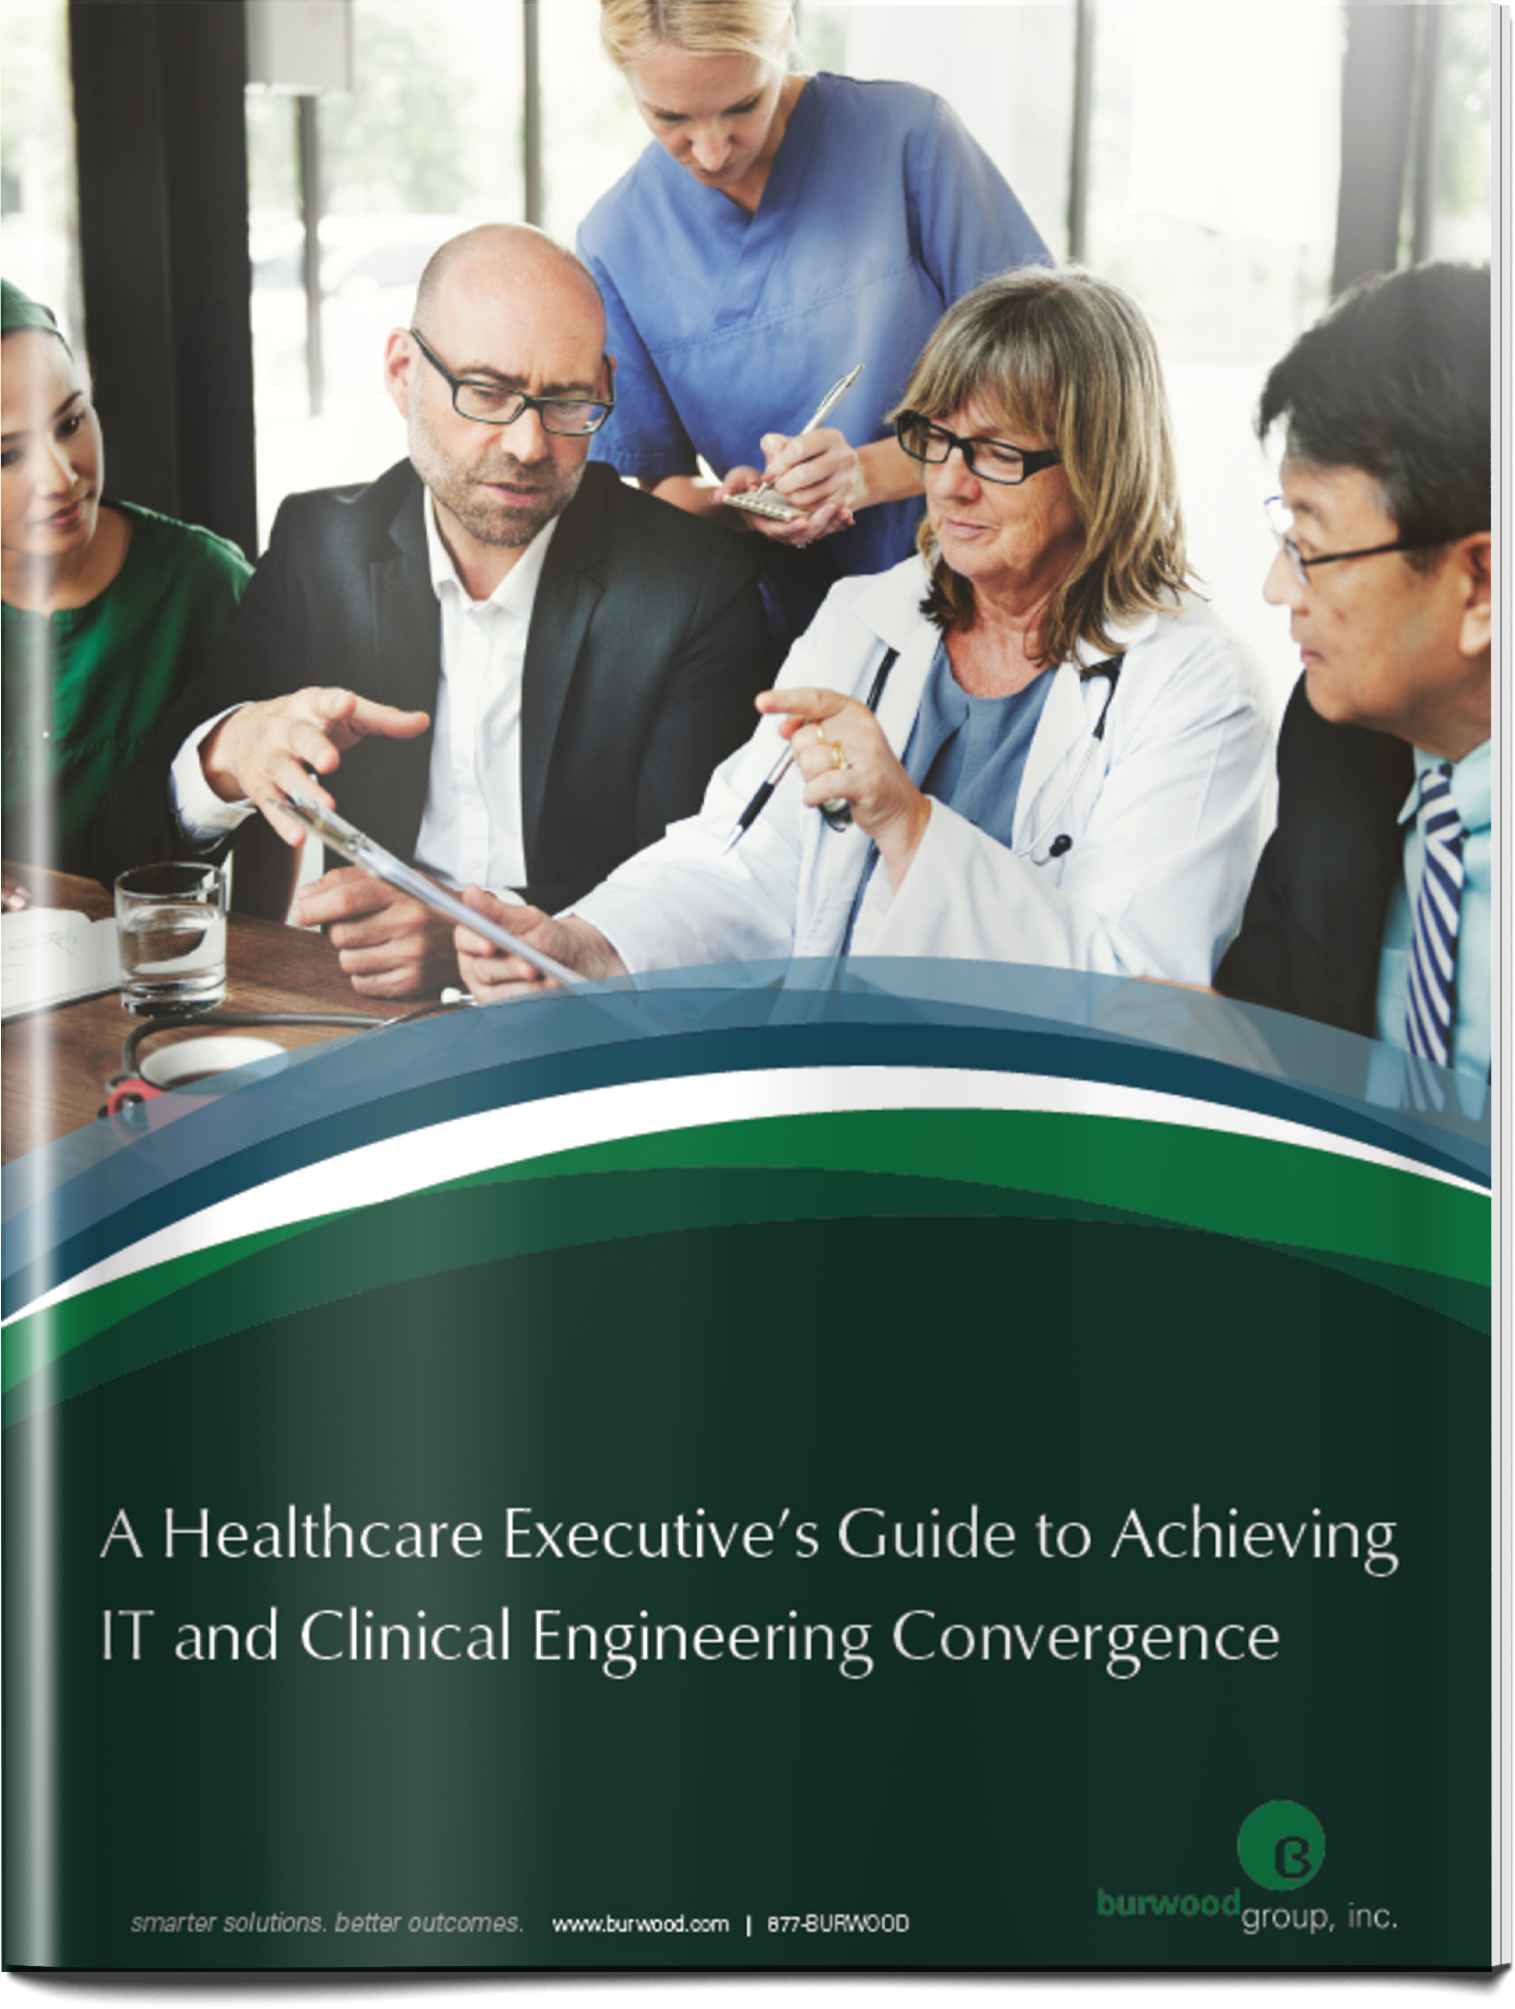 A Healthcare Executive's Guide to Achieving IT and Clinical Engineering Convergence - Our guide uncovers how IT and CE convergence can accelerate a health system's ability to implement life-saving patient care solutions.Download The Guide